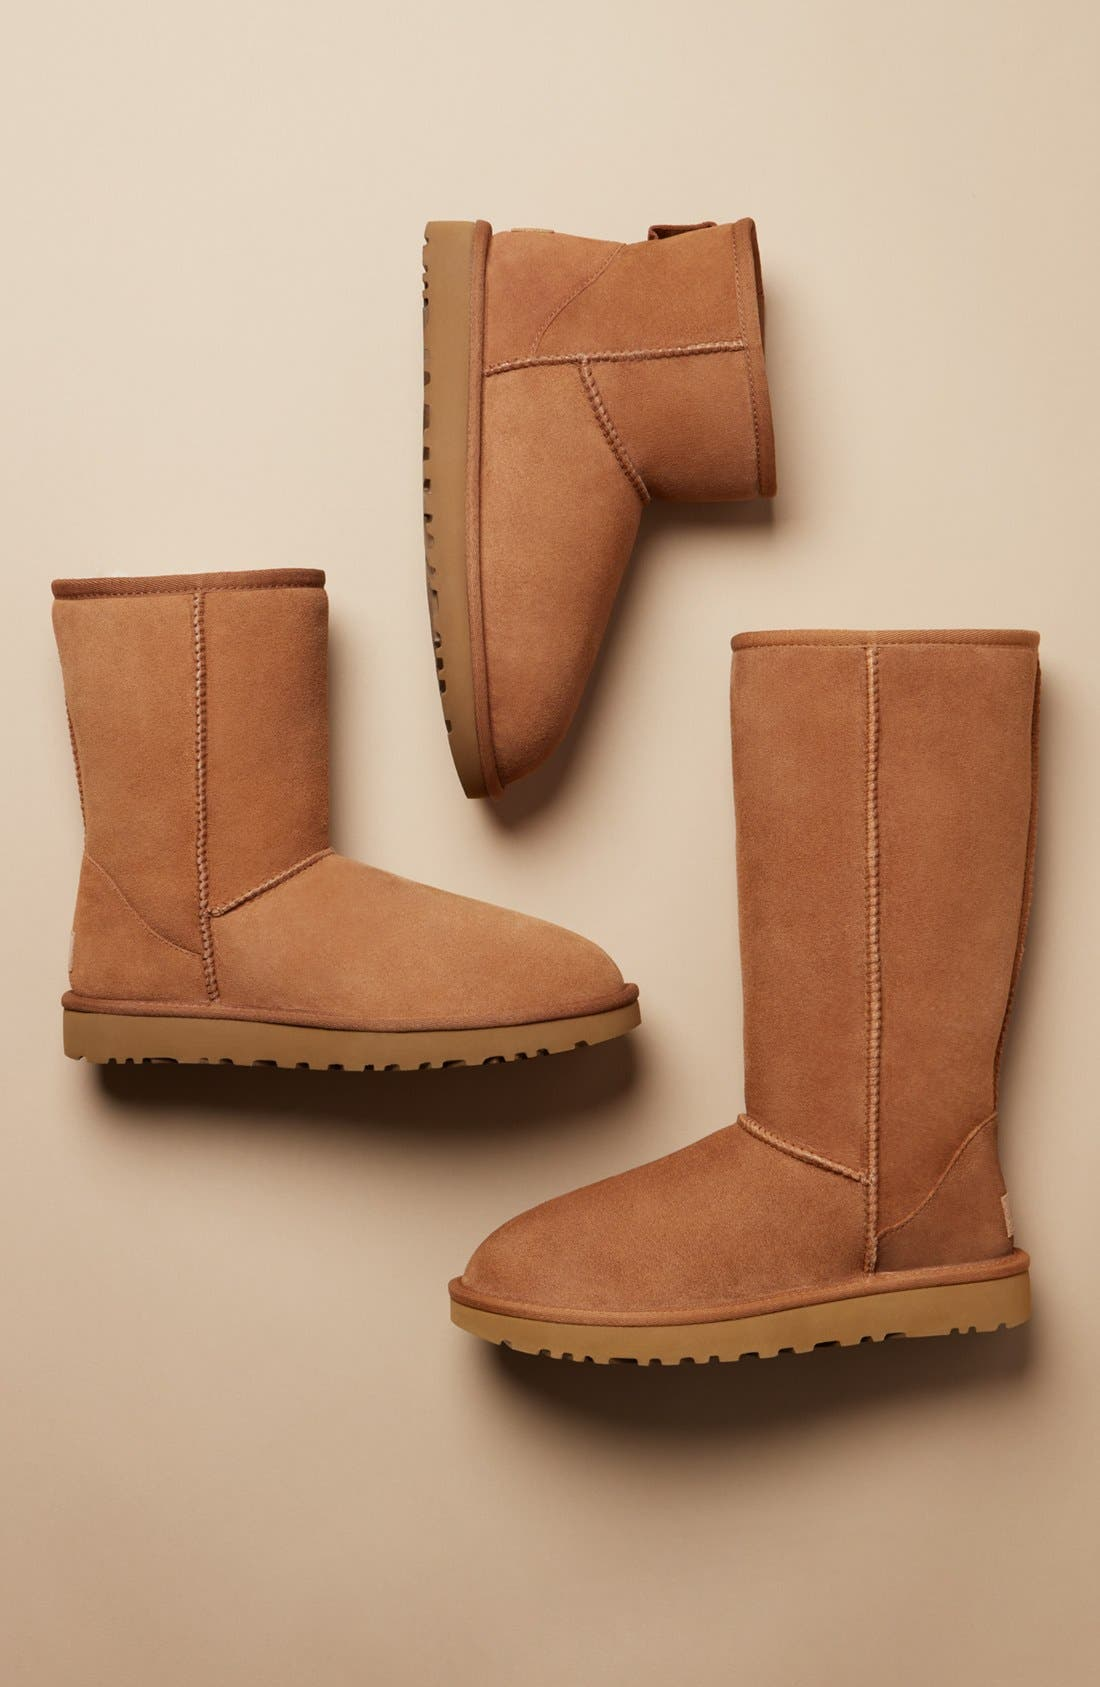 'Classic II' Genuine Shearling Lined Short Boot,                             Alternate thumbnail 9, color,                             CHESTNUT SUEDE